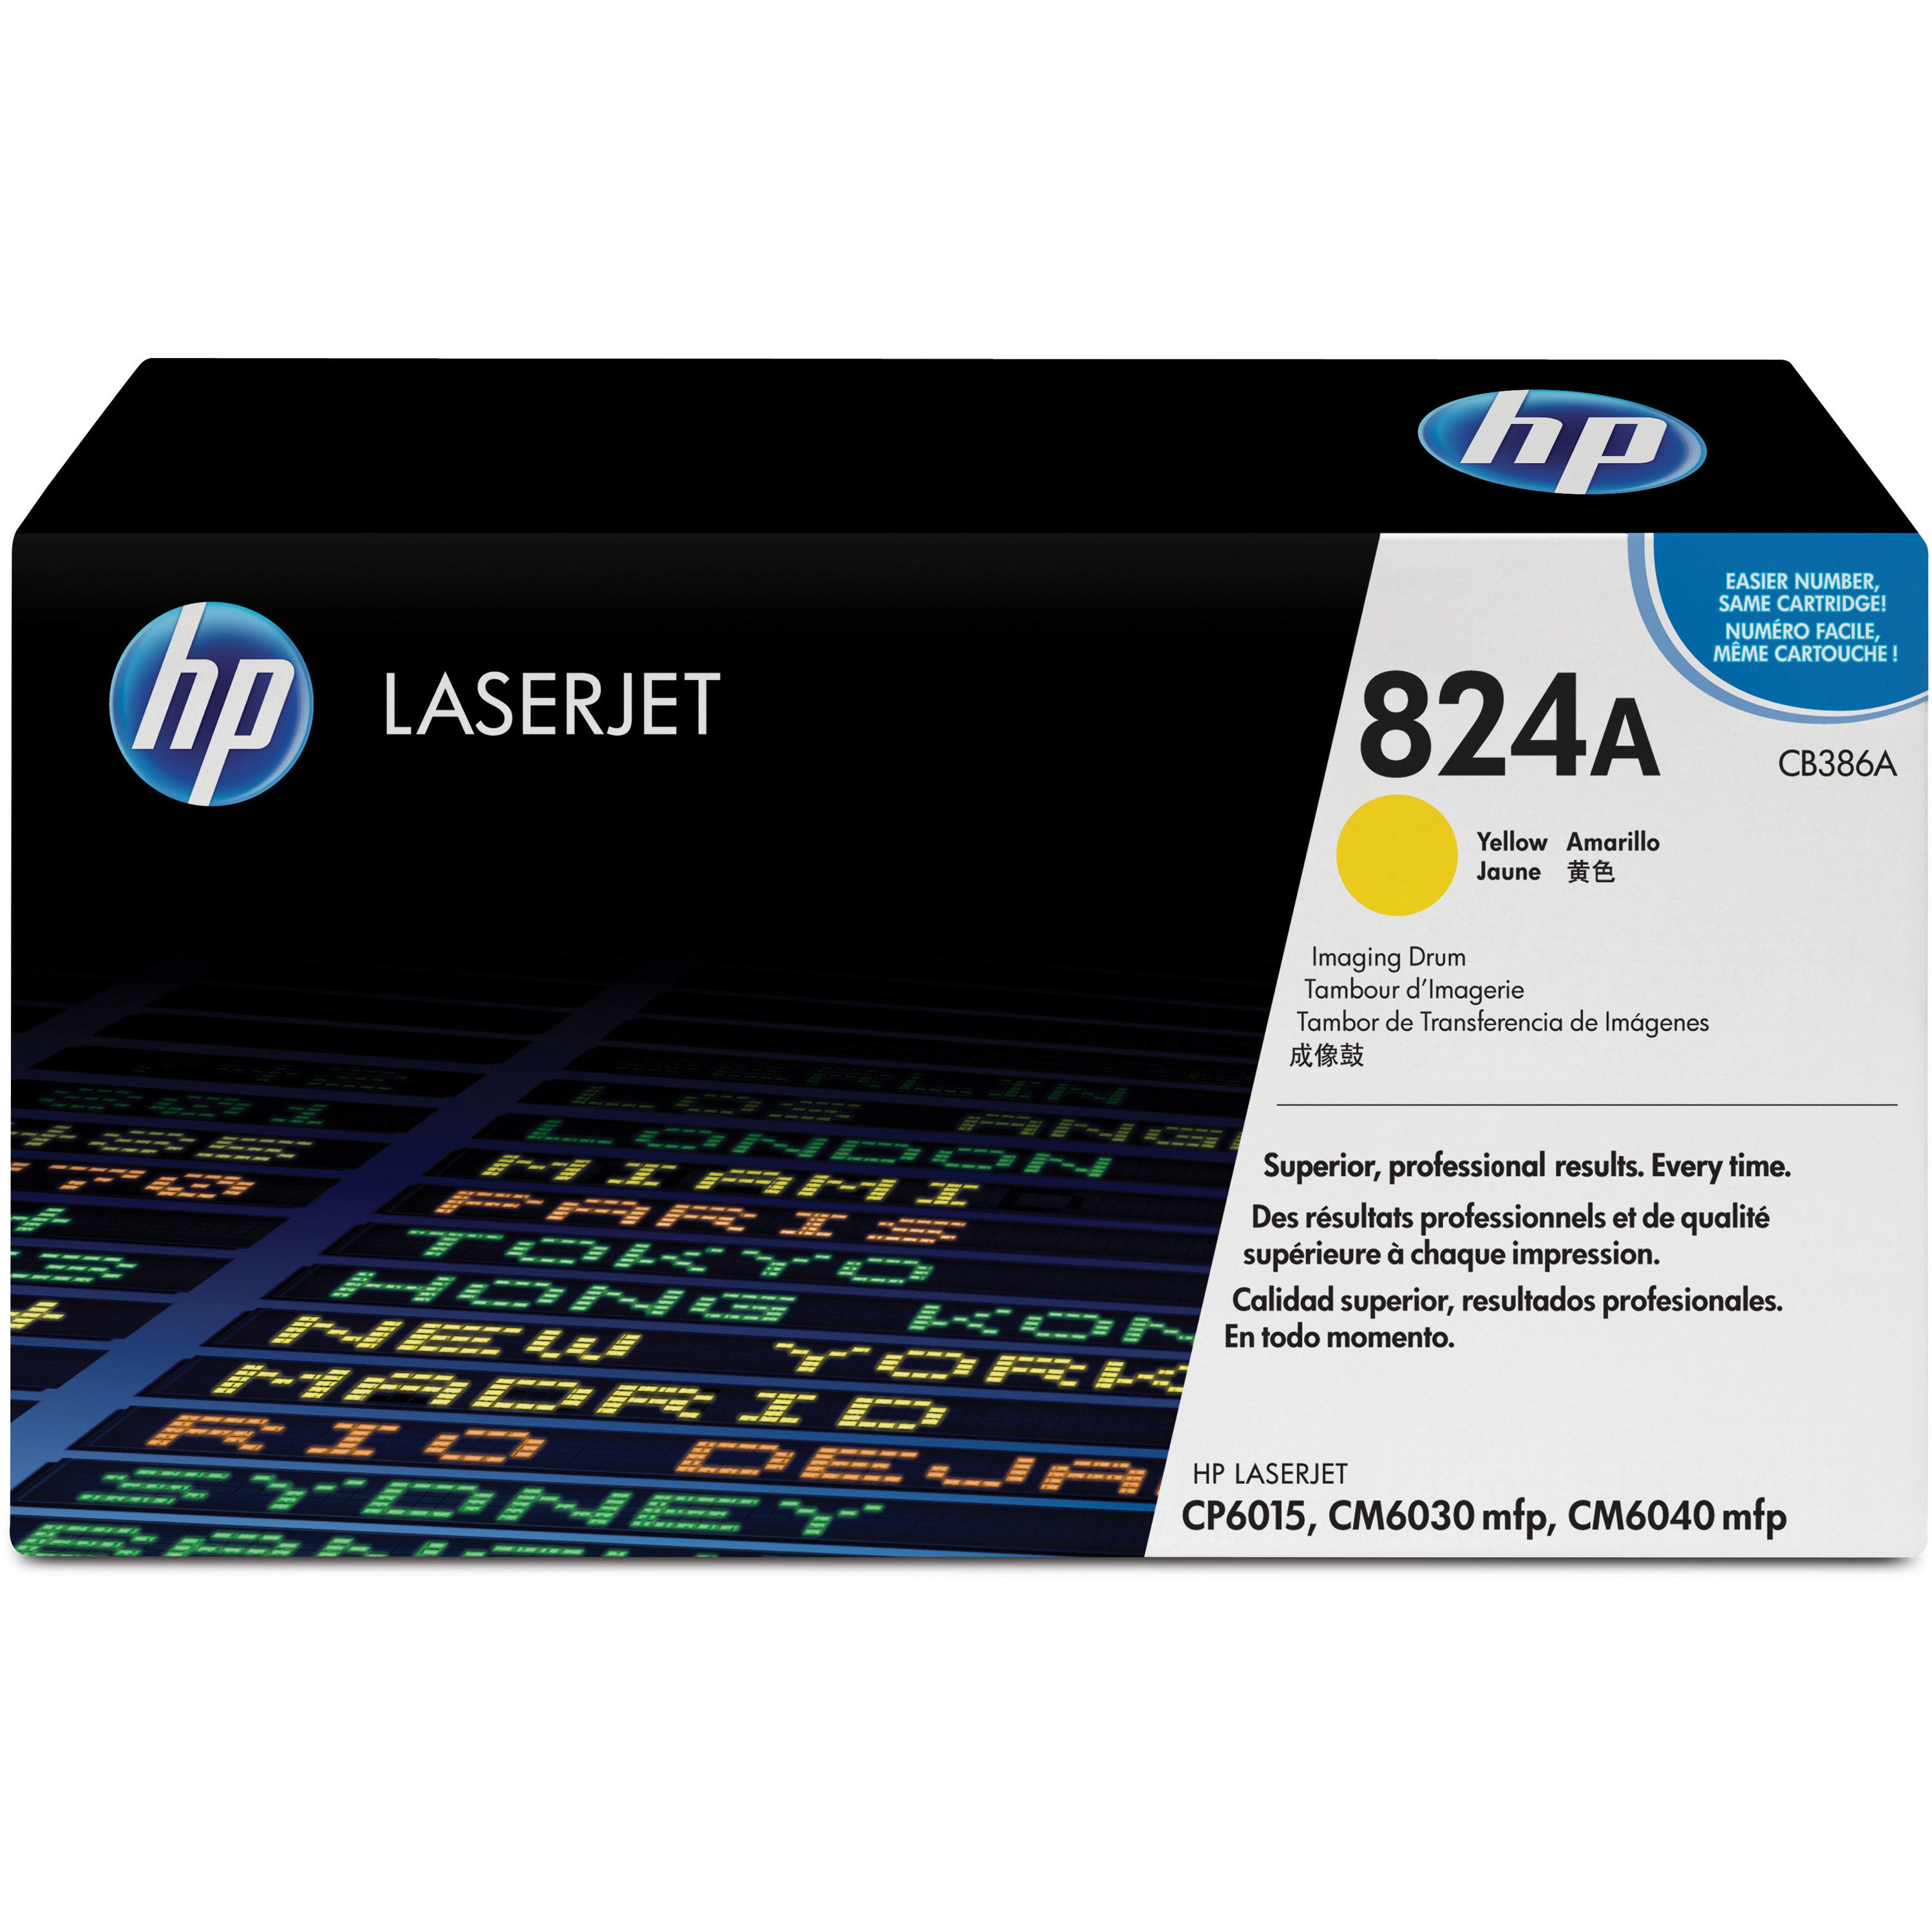 HP 824A (CB387A) Magenta Original LaserJet IMage Drum Single Pack, 1 Each (Quantity) by HP